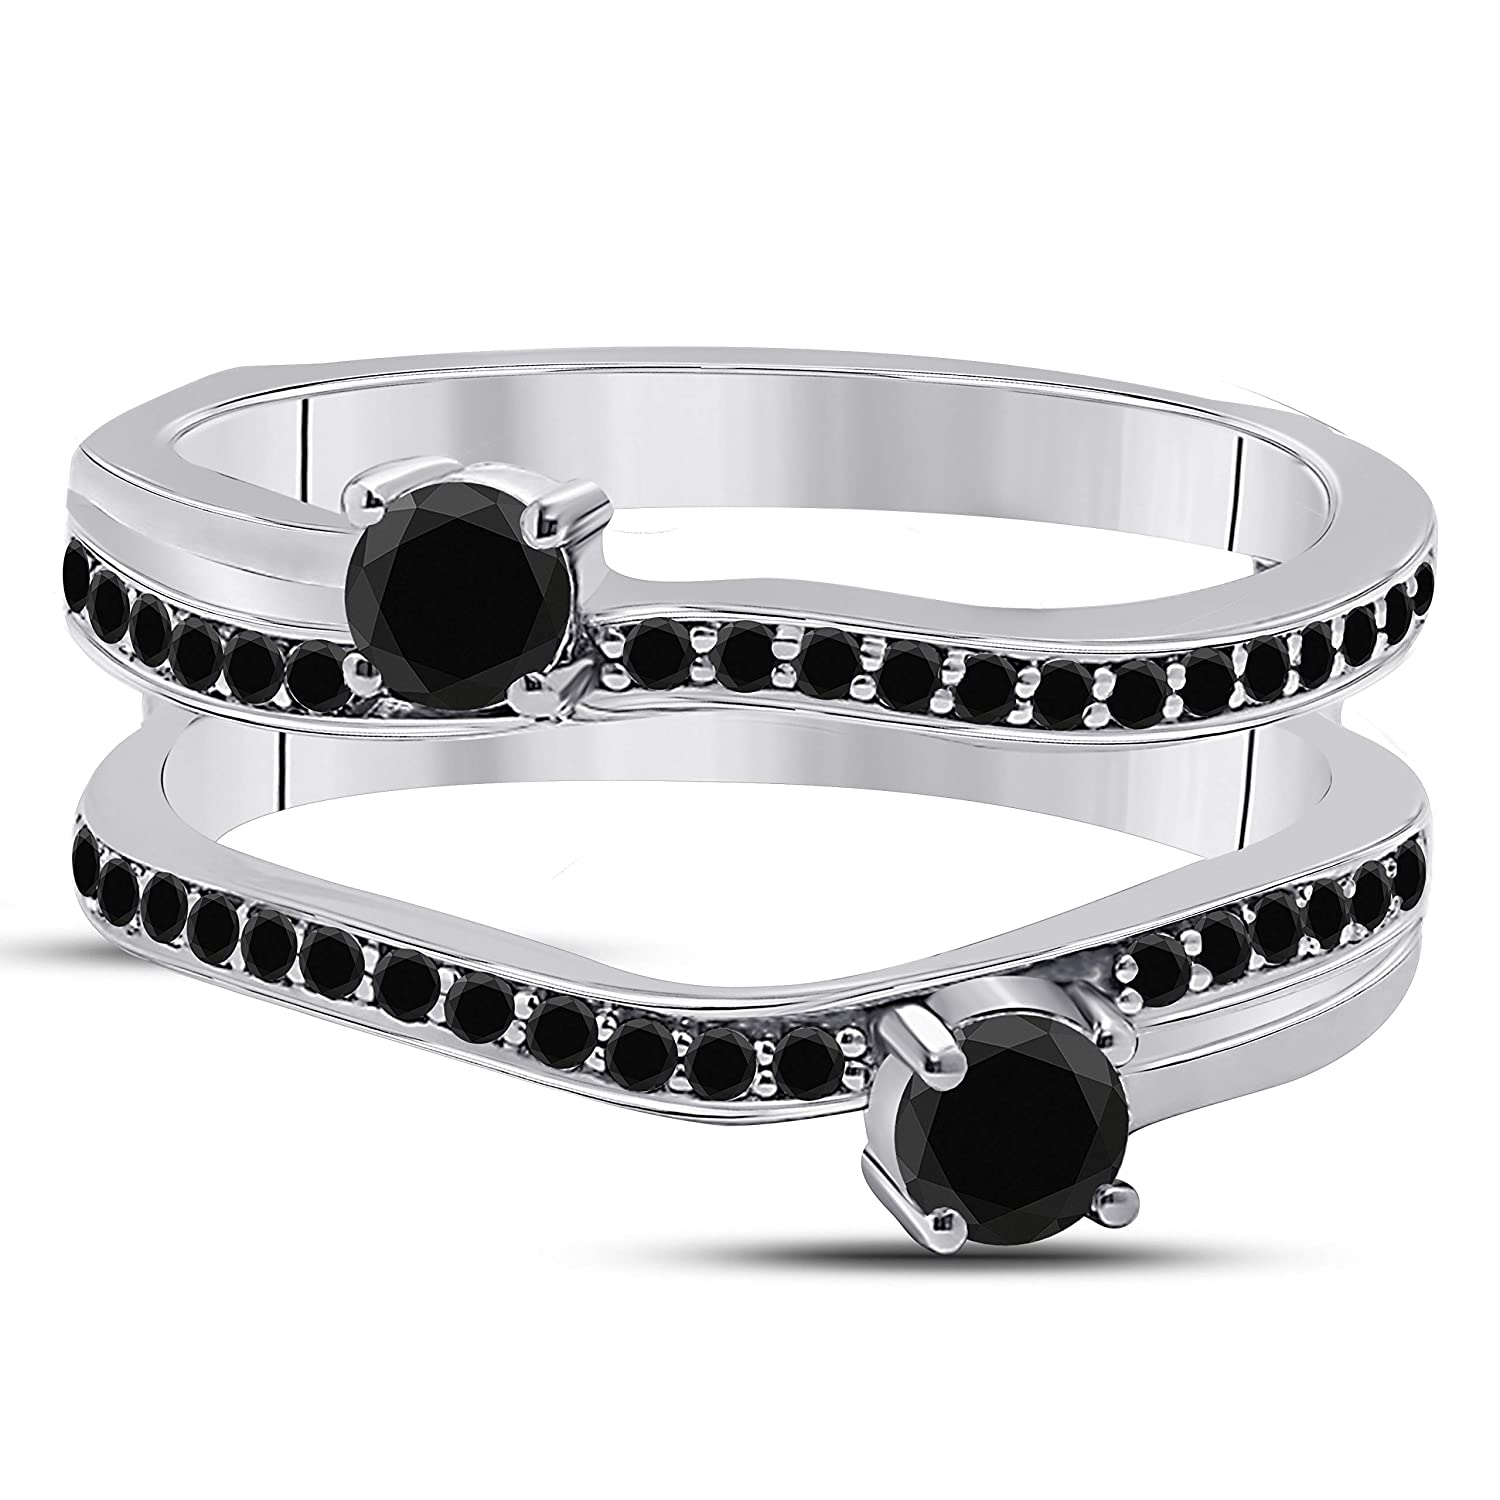 Forever Collection 0.60 CT 14k White Gold Plated Alloy Two Stone Prong Set Round Wedding Band Enhancer Guard Ring with CZ Black Sapphire ER-F21-41